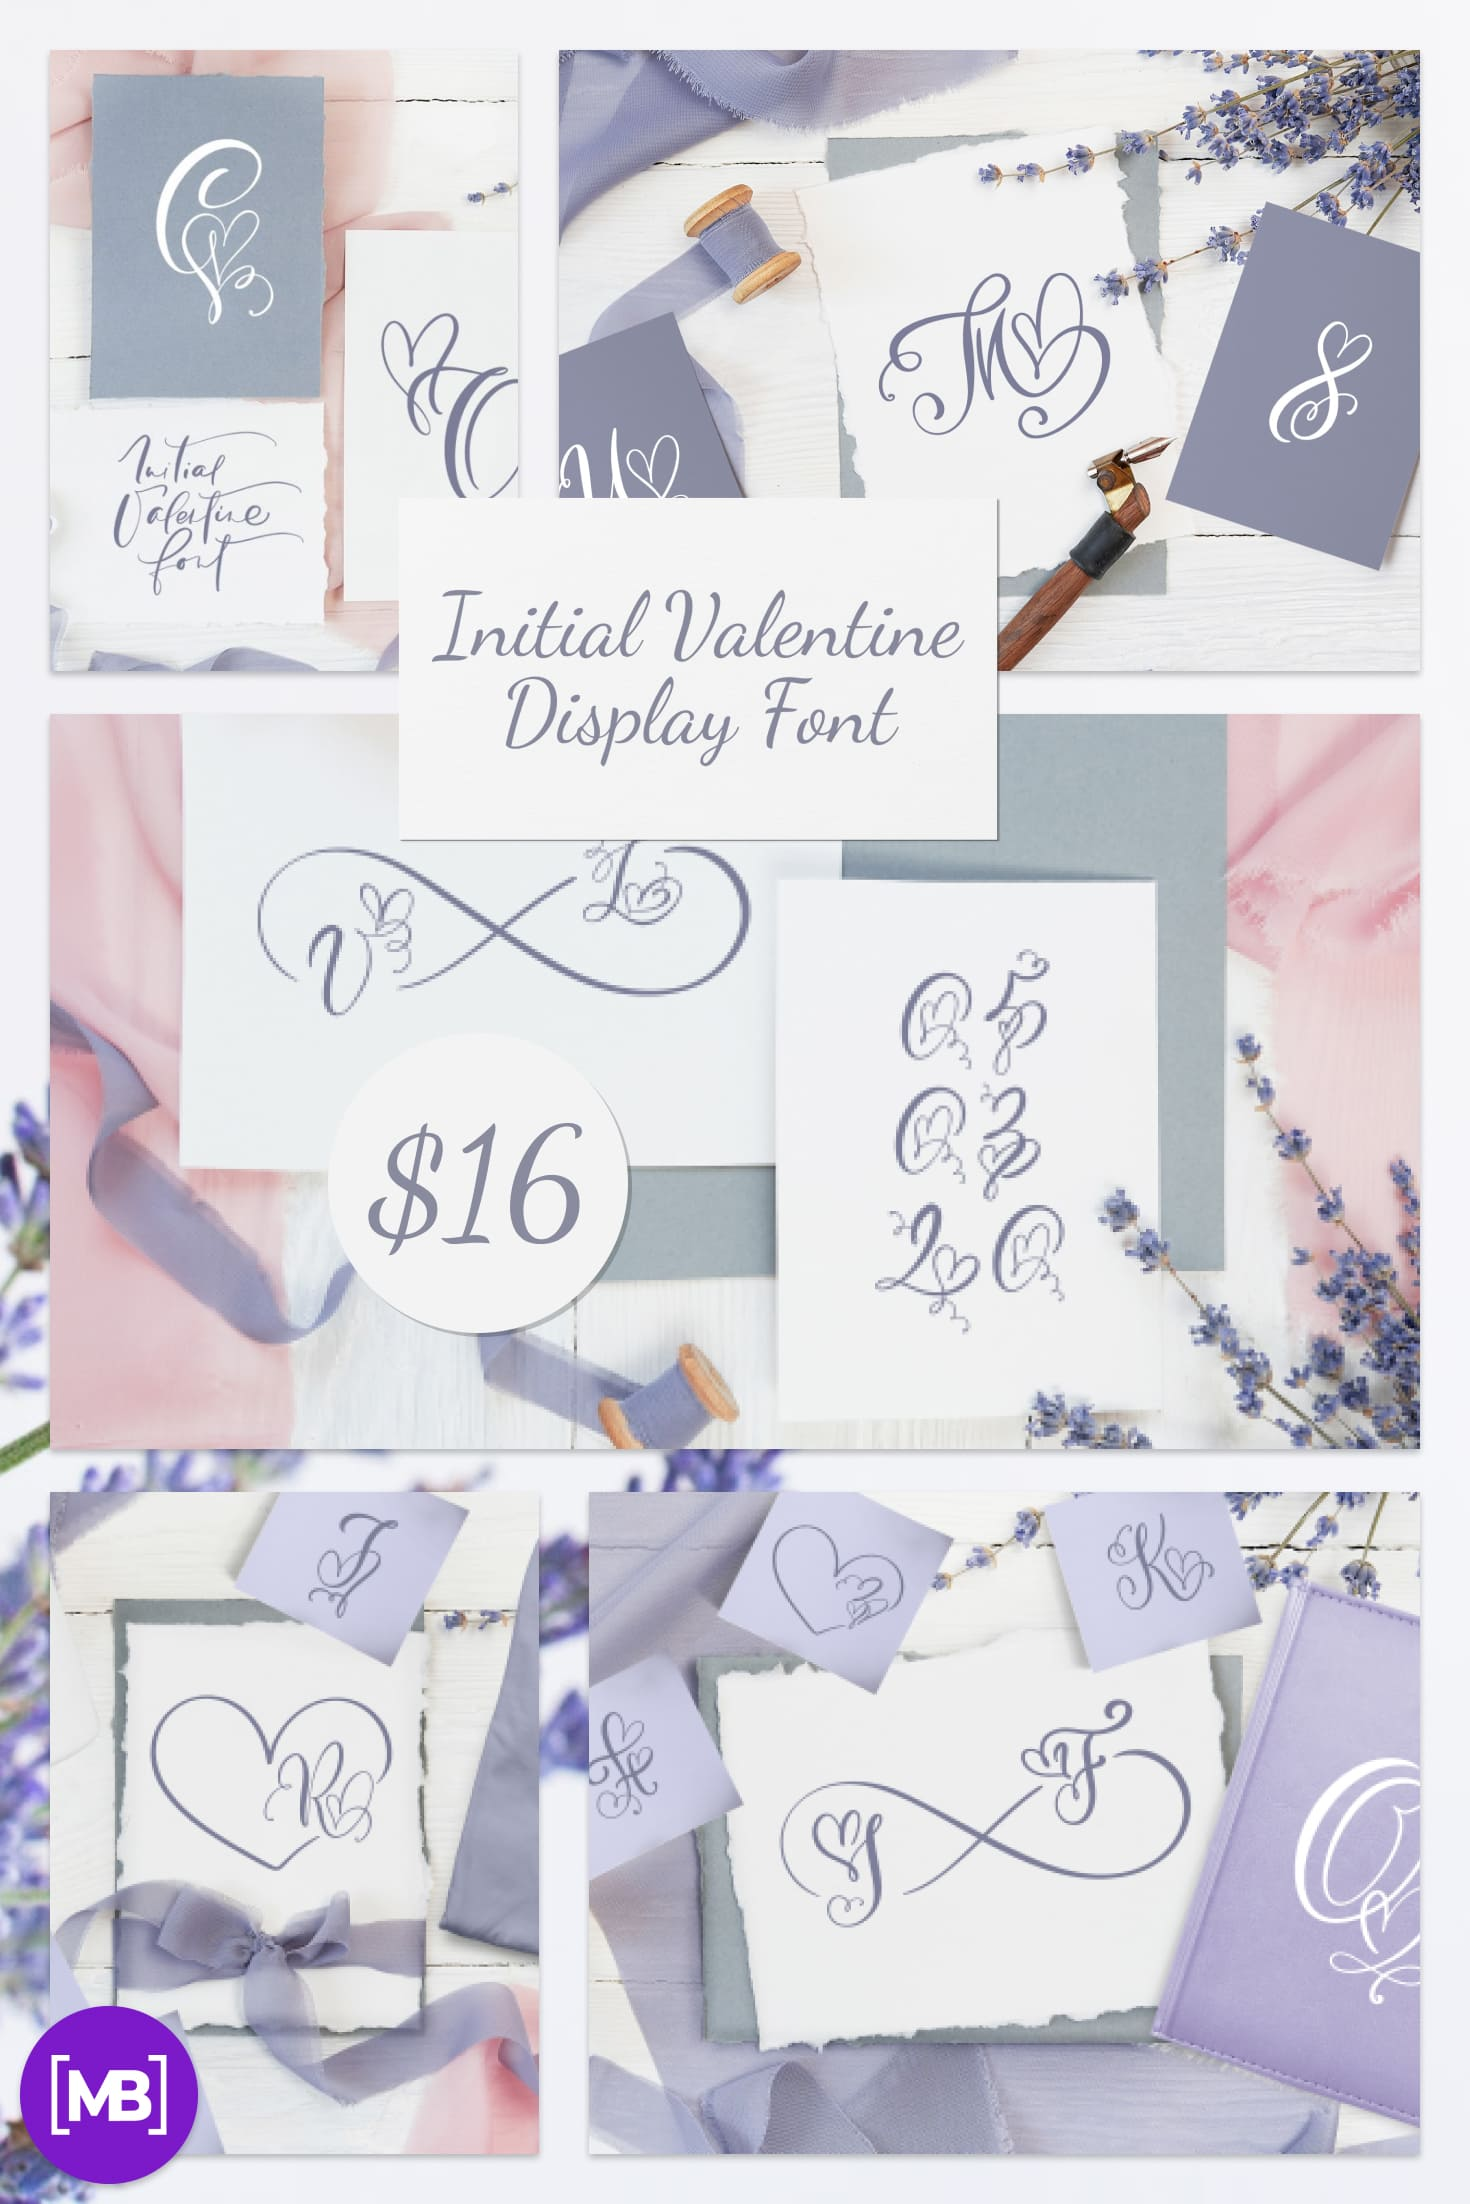 Pinterest Image: Best Valentines Day Font in 2021. Initial Valentine Display Font!